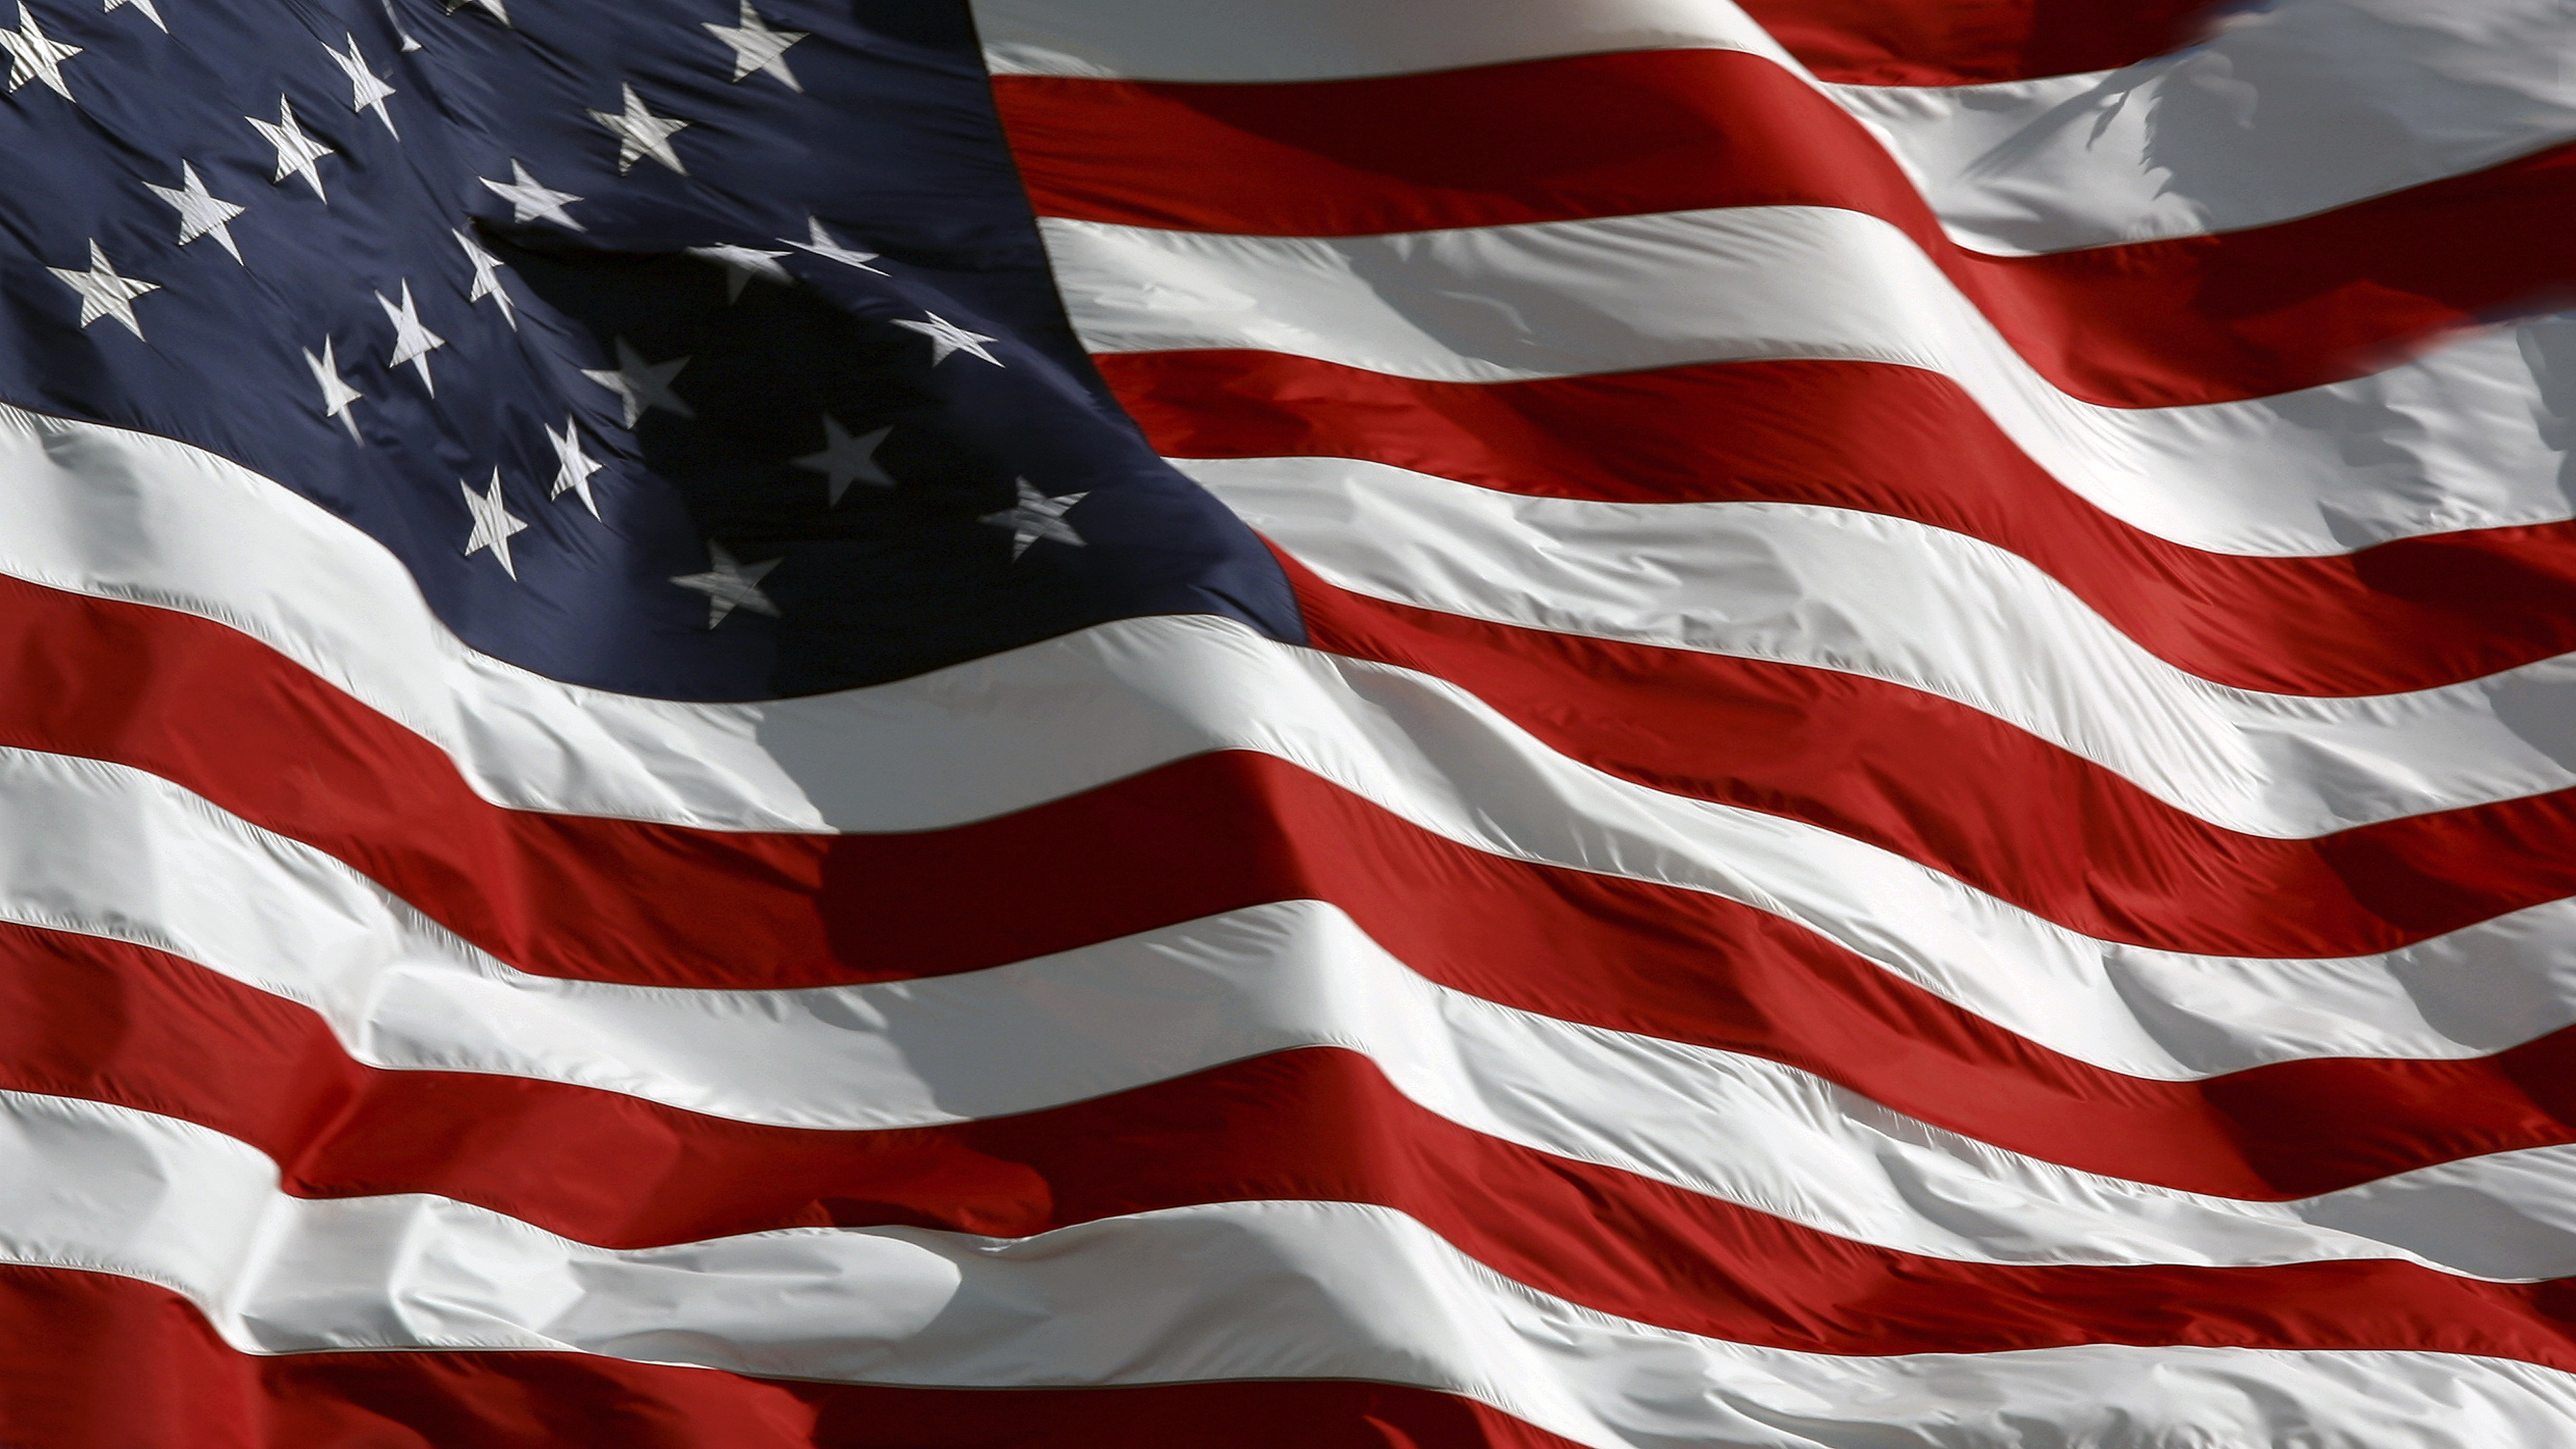 Similiar American Flag High Resolution Backgrounds Keywords 3840x2160